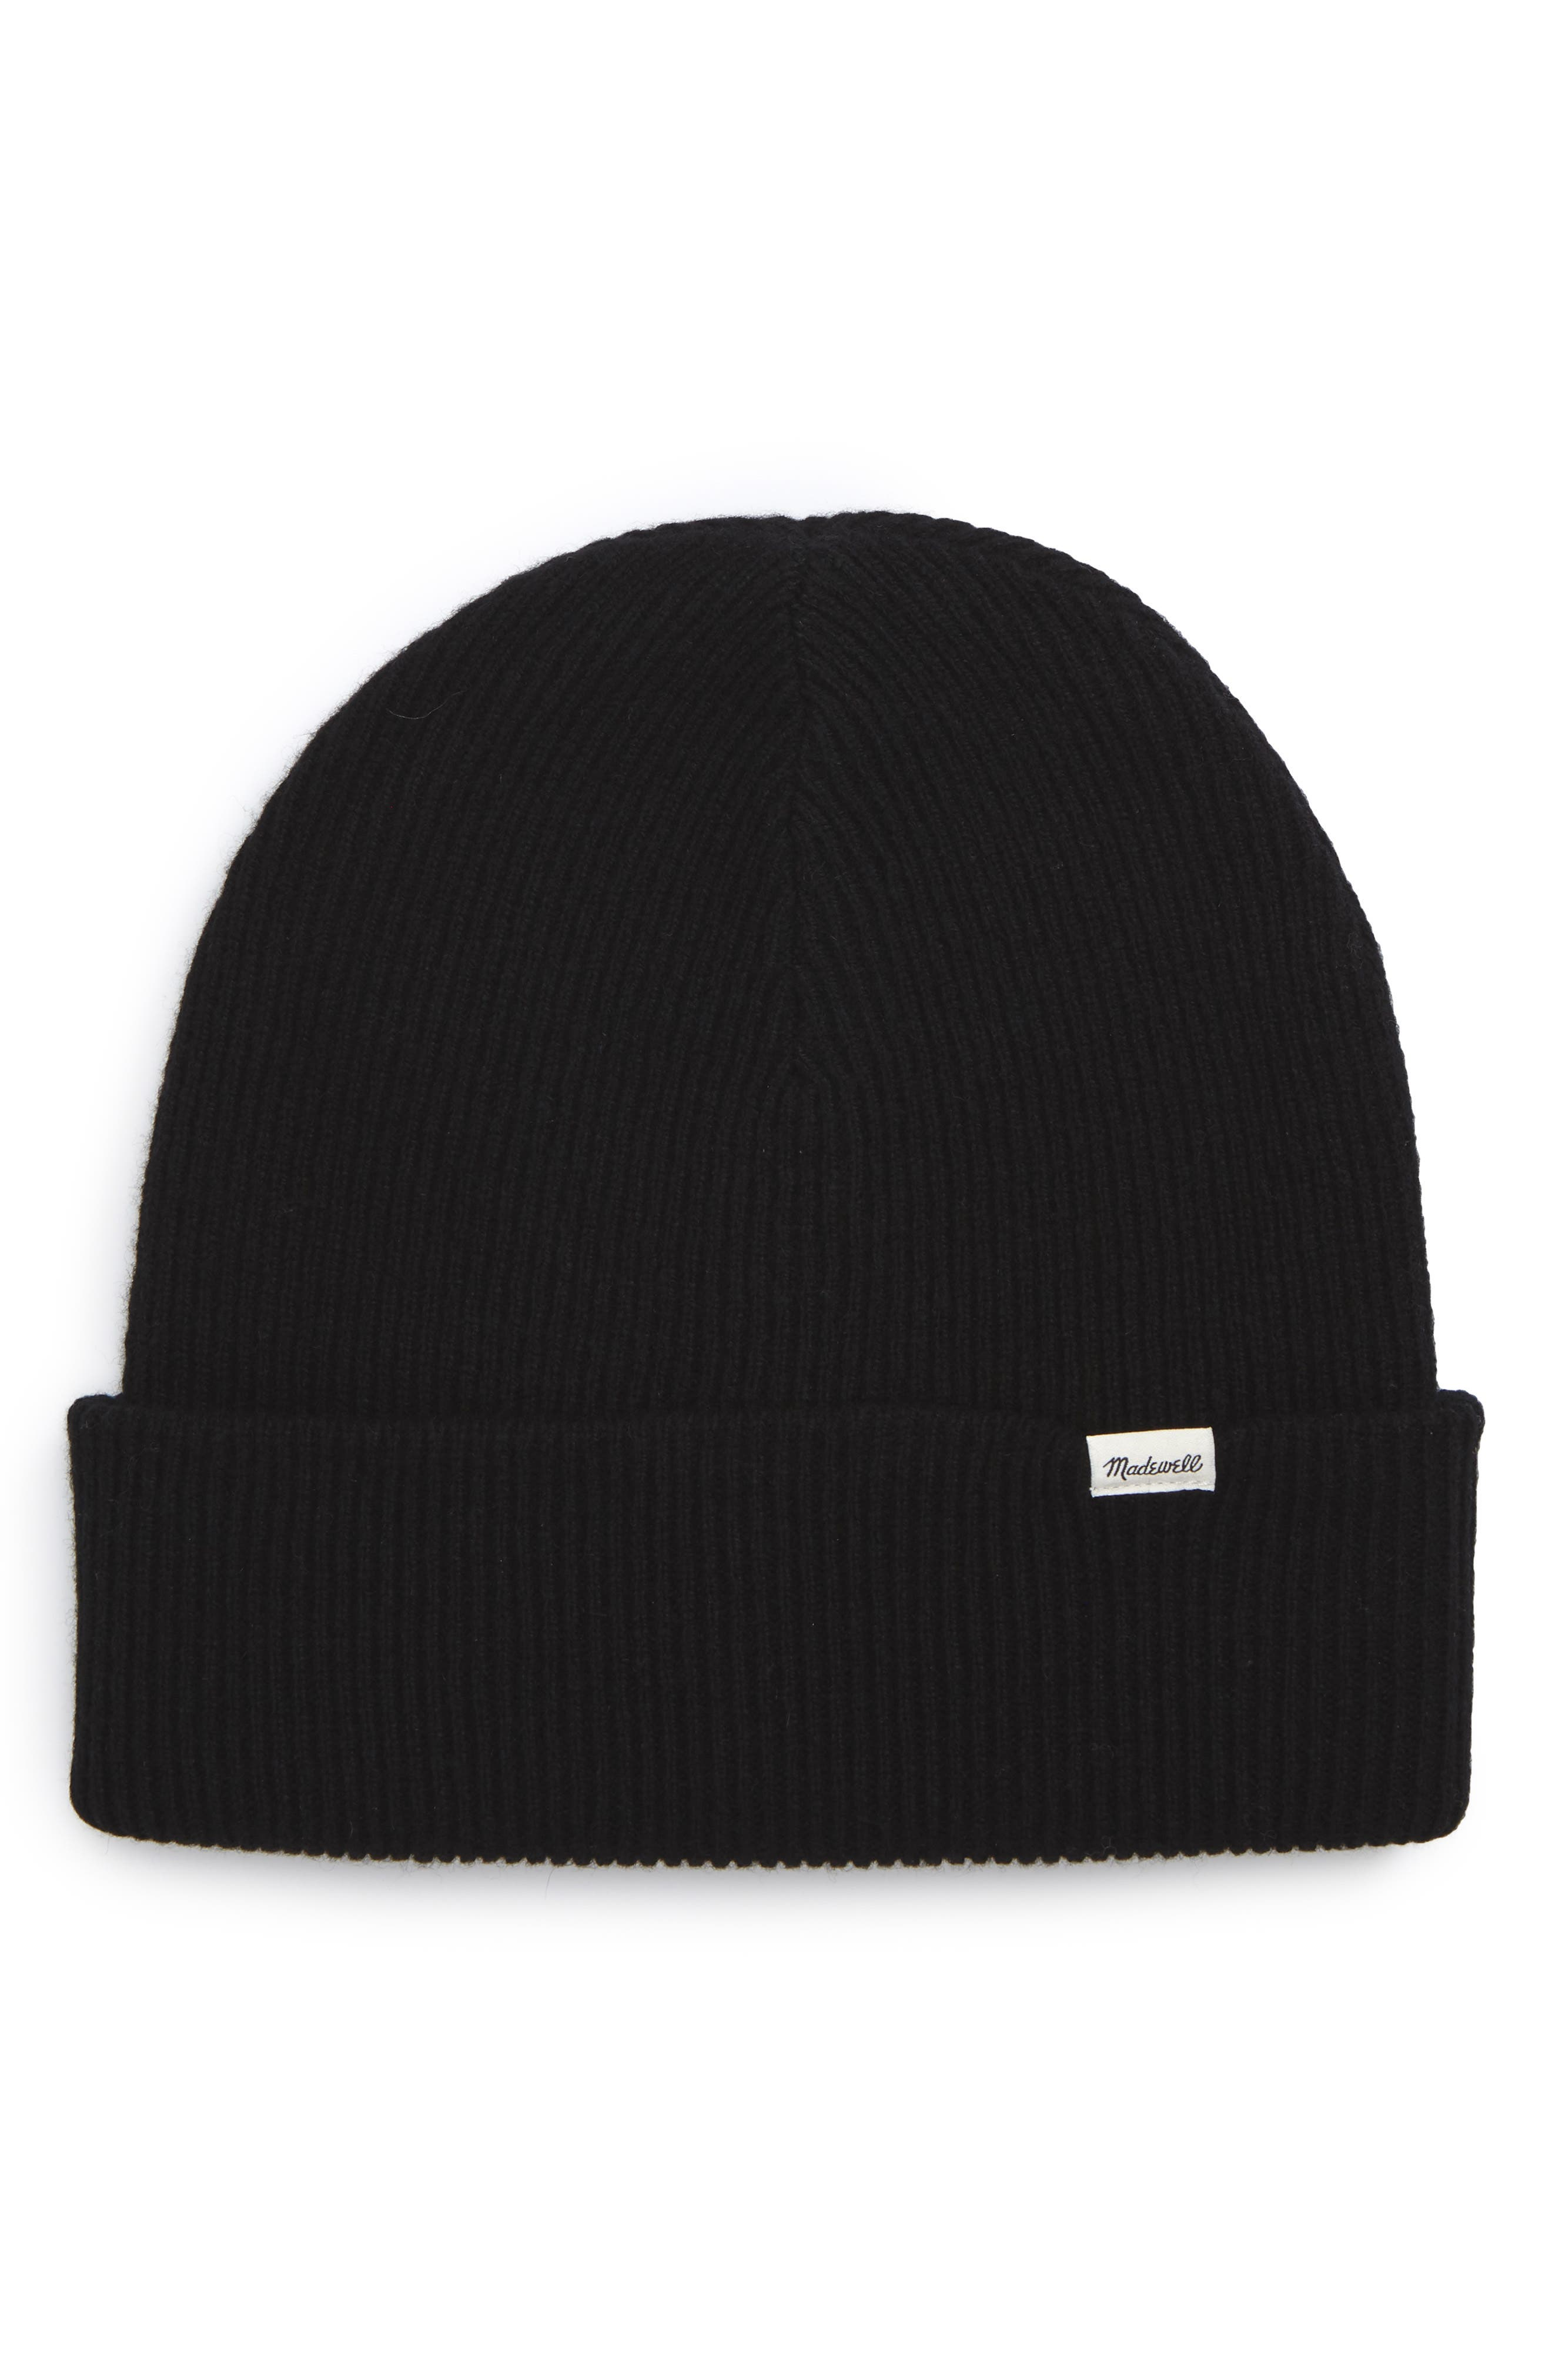 Cuffed Wool Beanie,                         Main,                         color, 001